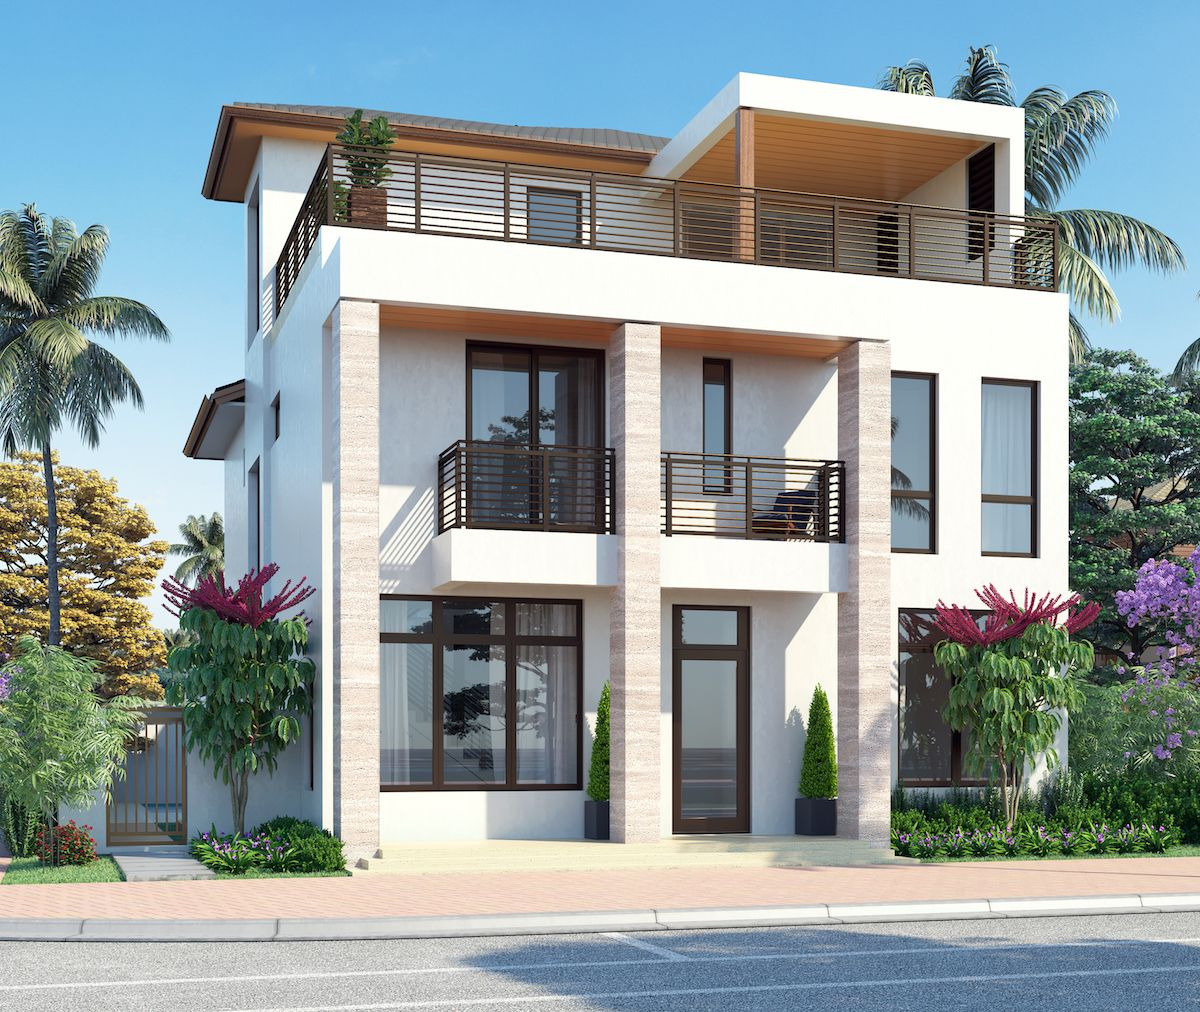 Strange Canarias At Downtown Doral In Miami Fl New Homes By Cc Homes Download Free Architecture Designs Intelgarnamadebymaigaardcom